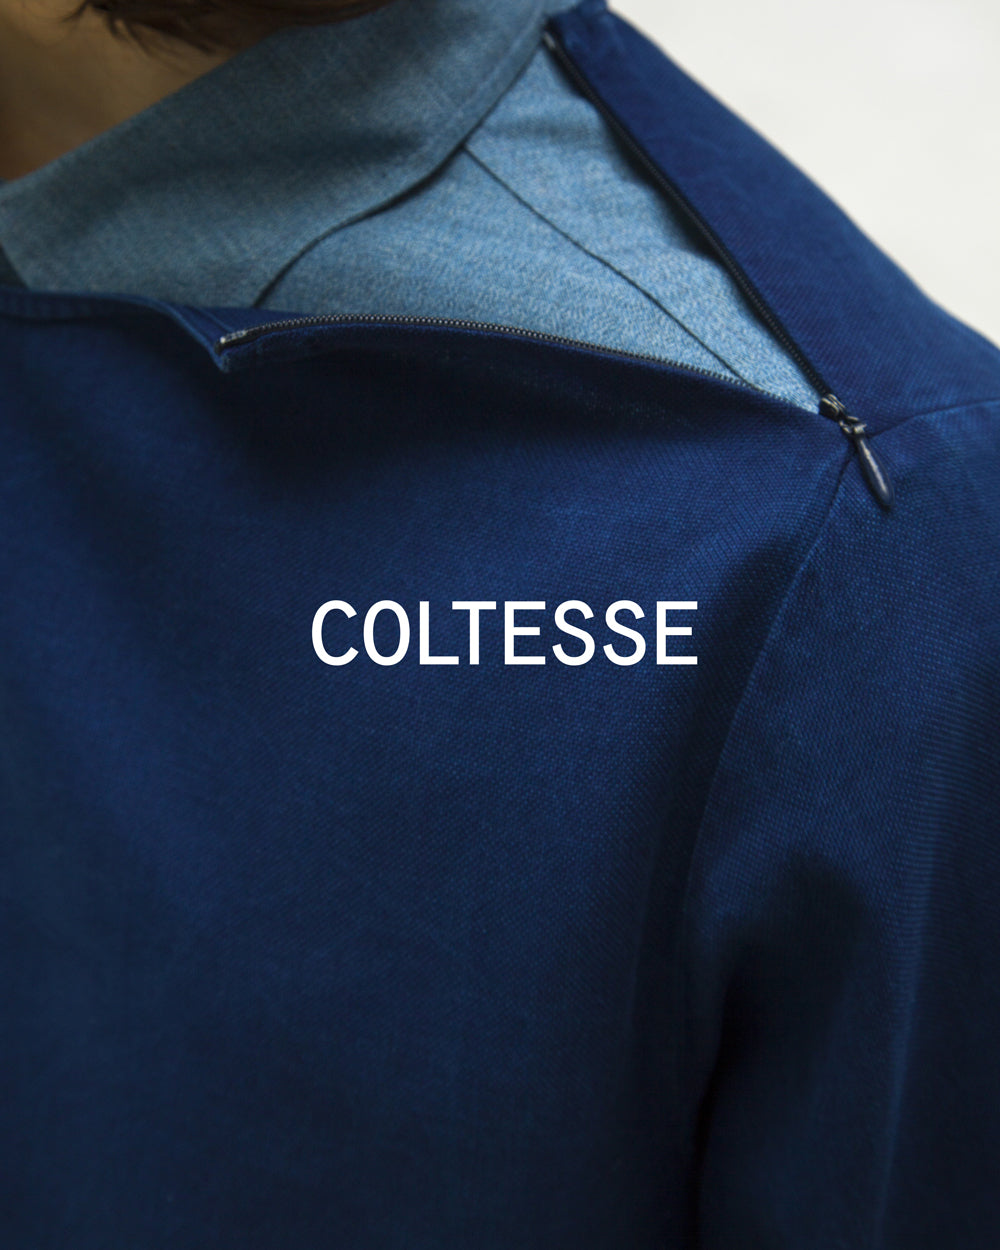 ss16 coltesse